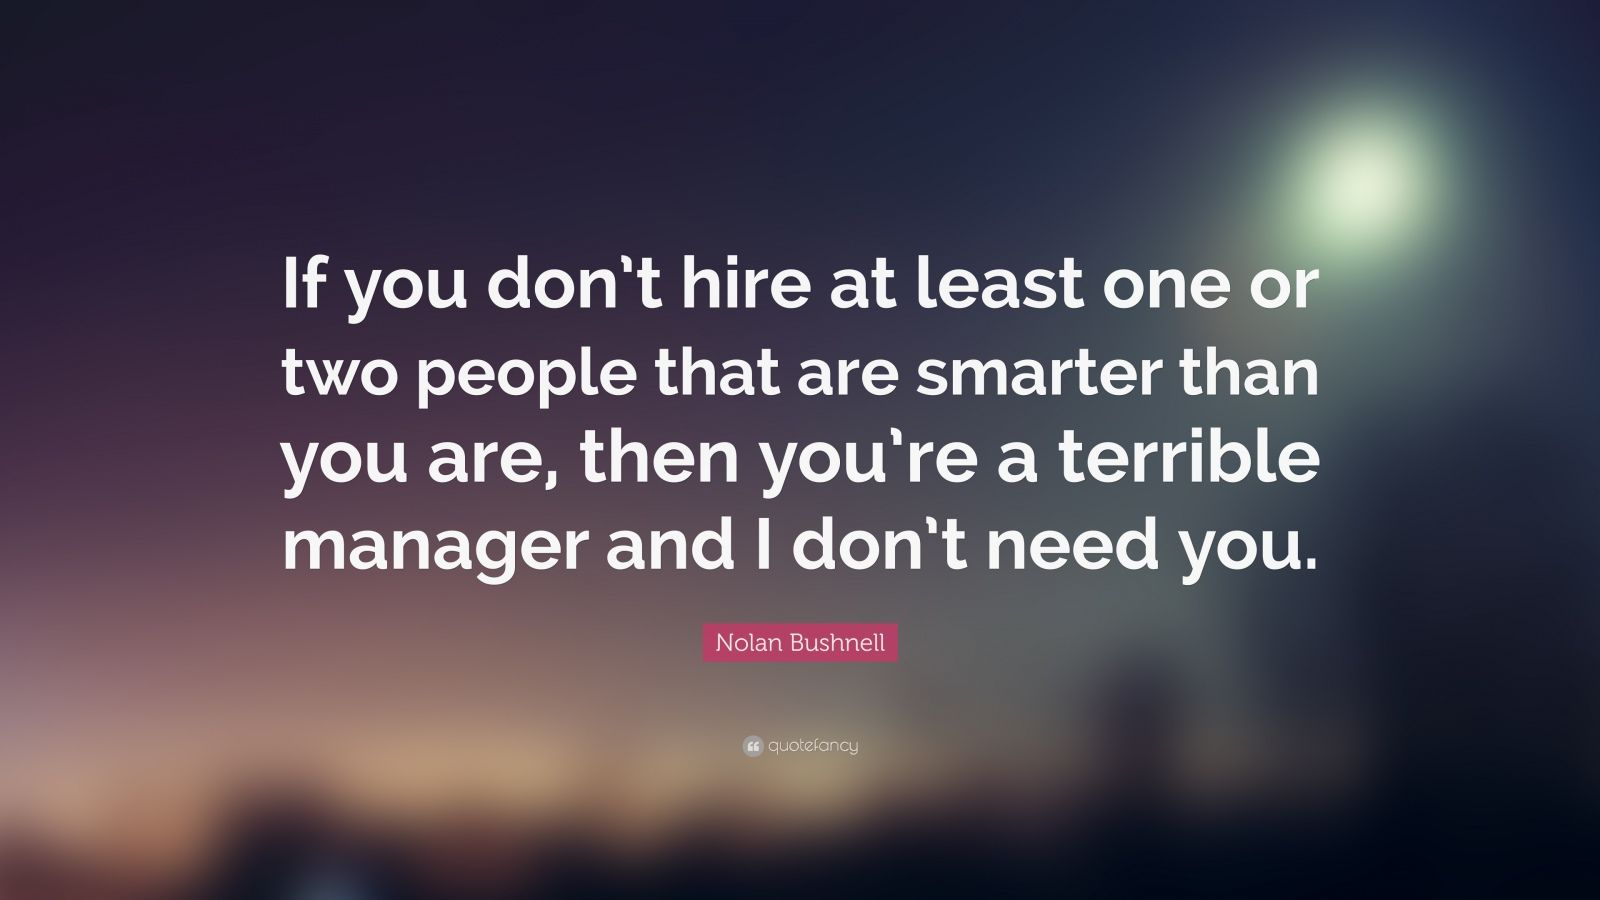 """Nolan Bushnell Quote: """"If you don't hire at least one or two people that are smarter than you are, then you're a terrible manager and I don't need you."""""""